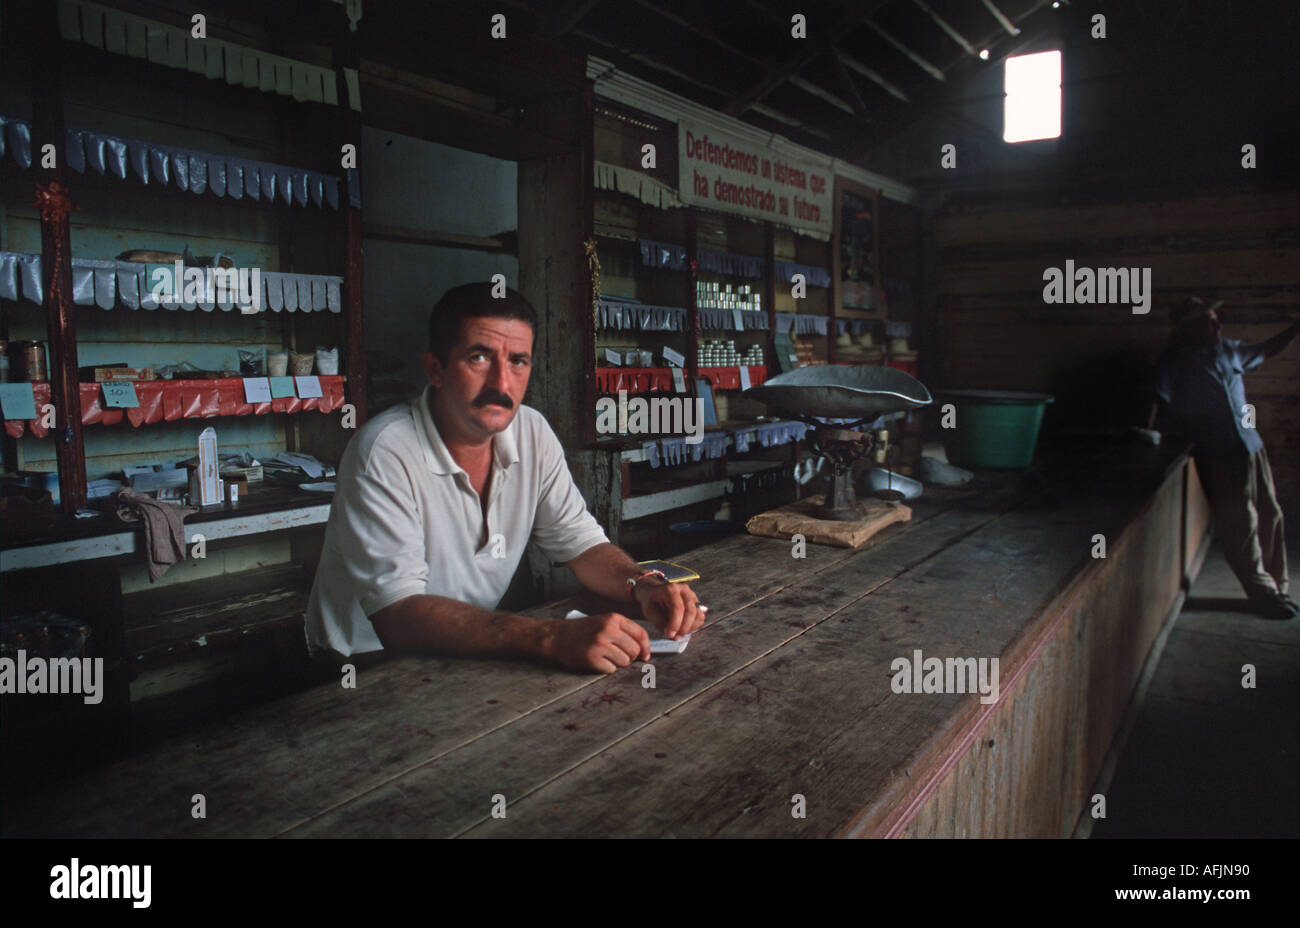 Shopkeeper at the government sponsored local store rationing products in short supply Holguin Cuba - Stock Image